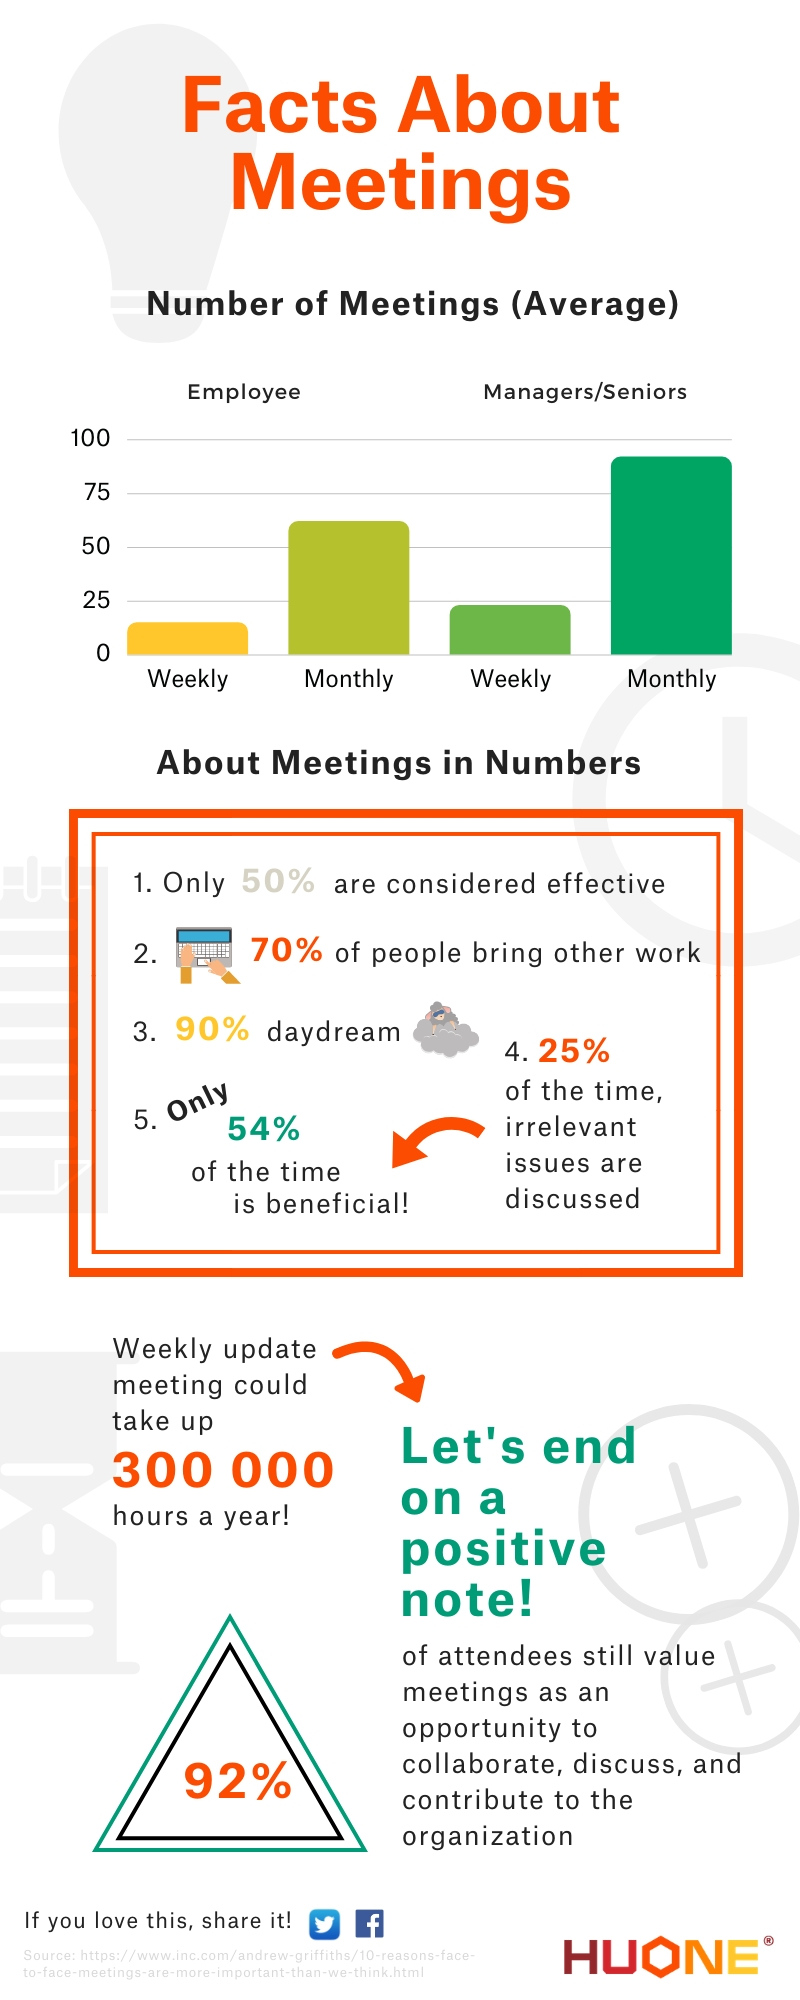 Facts about meetings infographic HUONE